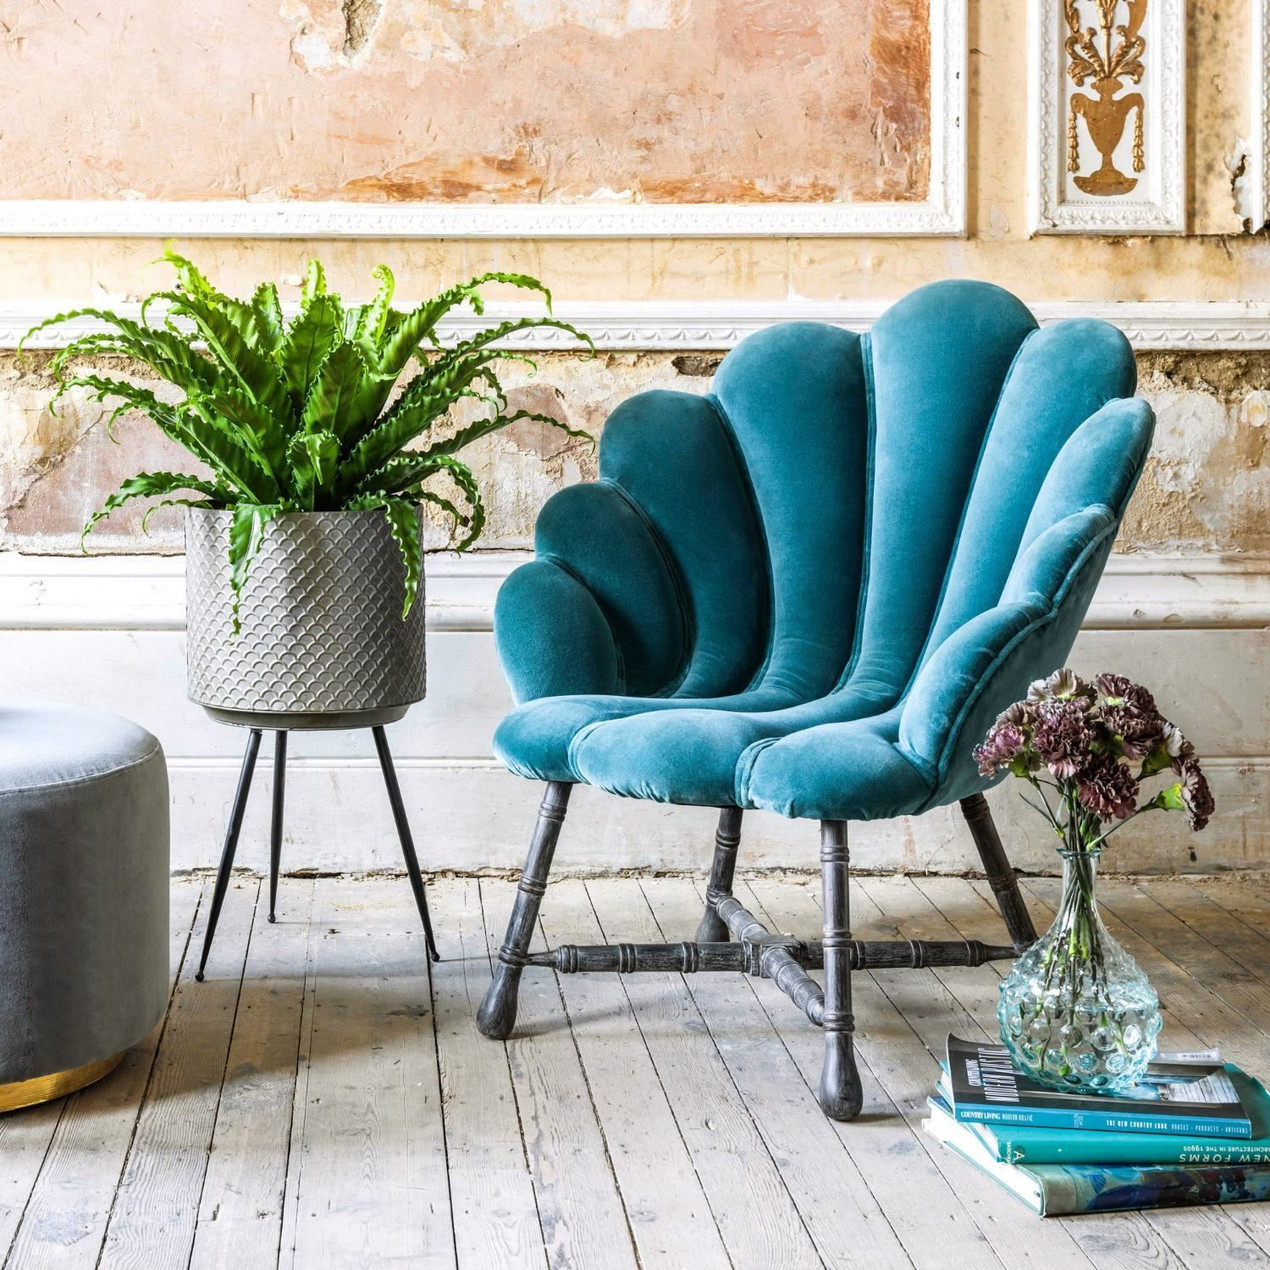 ARIEL TEAL VELVET CHAIR Bring a hint of Art Deco glamour home with our stunning Ariel chair. A sculptural clam-shell design is upholstered in sumptuous teal velvet, with dark carved wooden legs to complete the piece.